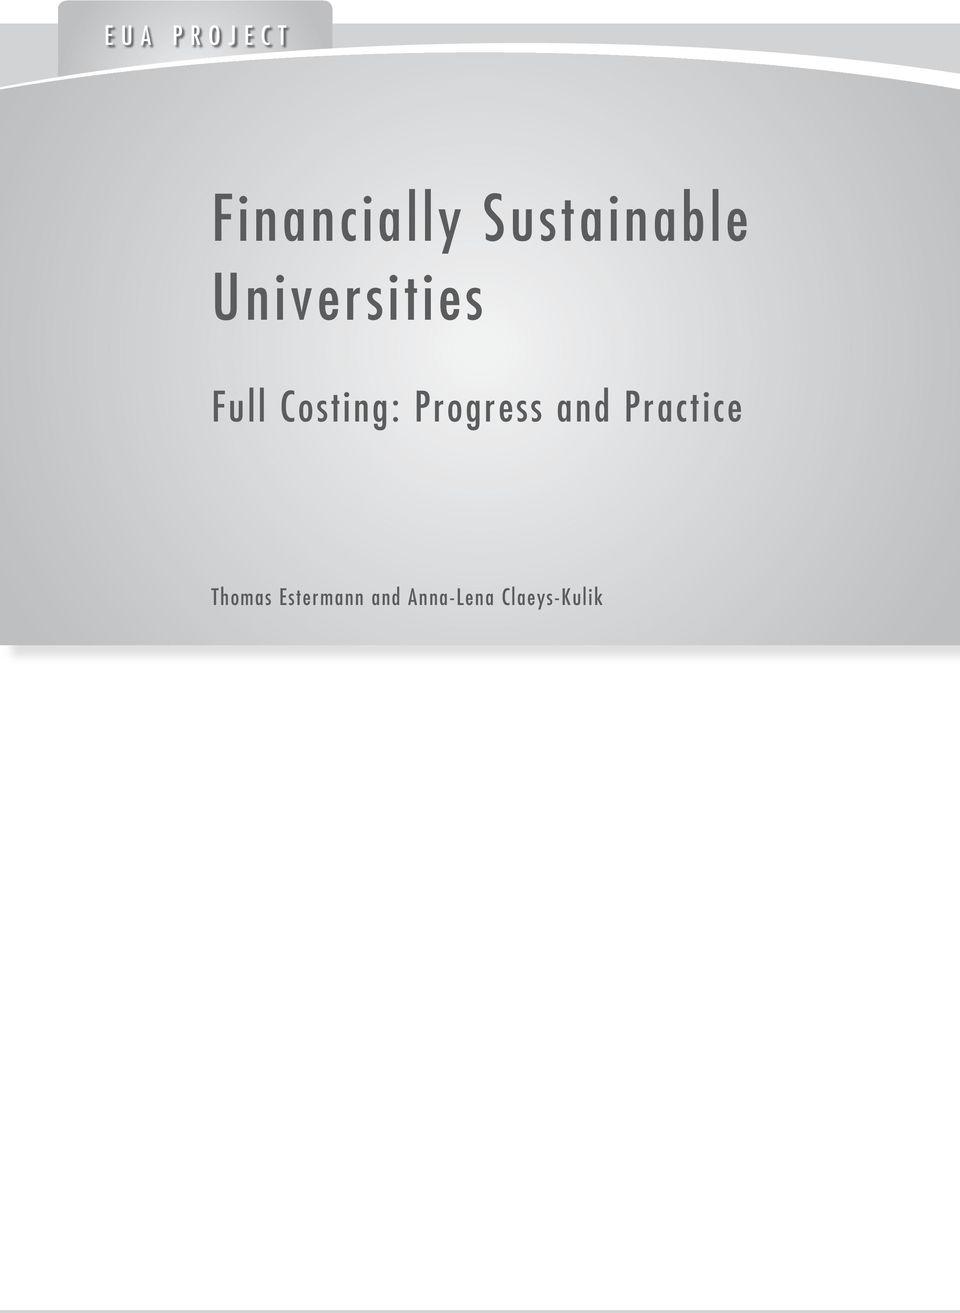 Costing: Progress and Practice